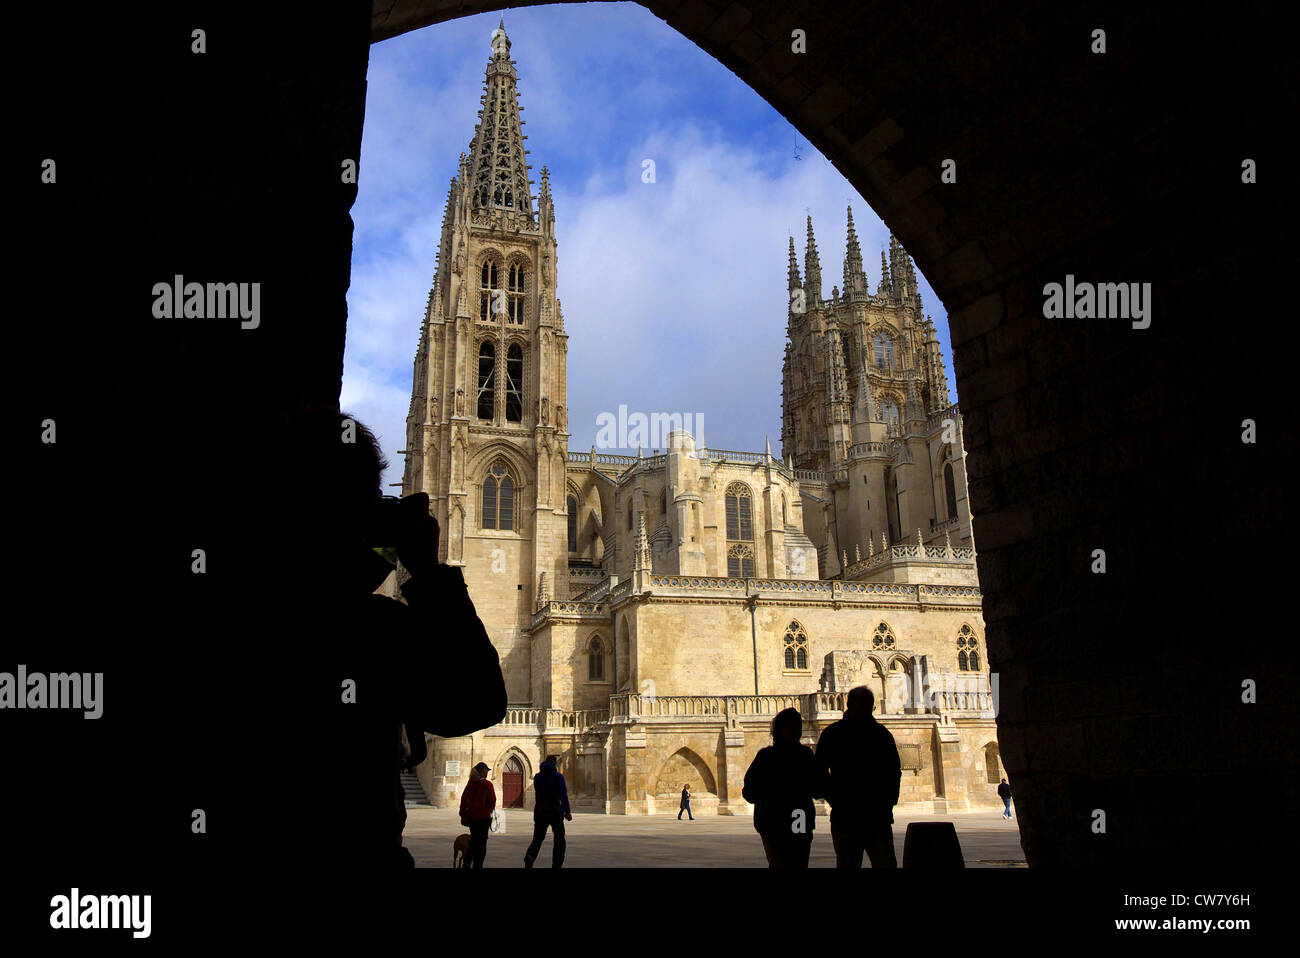 The Cathedral of Santa Maria in Burgos, Spain, taken from under the arch of Santa Maria. - Stock Image